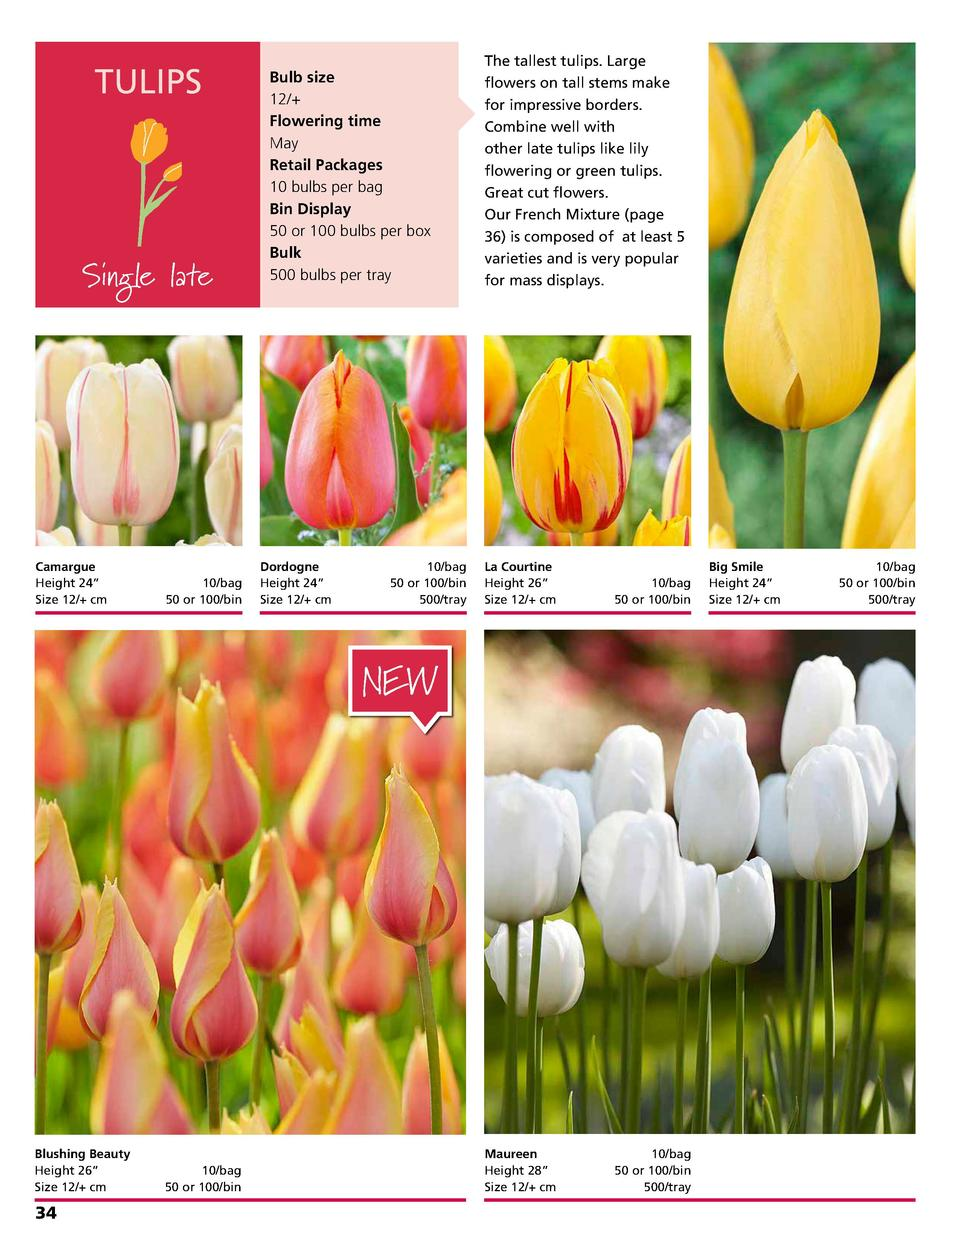 TULIPS  Single late  Camargue Height 24     Size 12   cm    10 bag 50 or 100 bin  Bulb size 12   Flowering time May Retail...